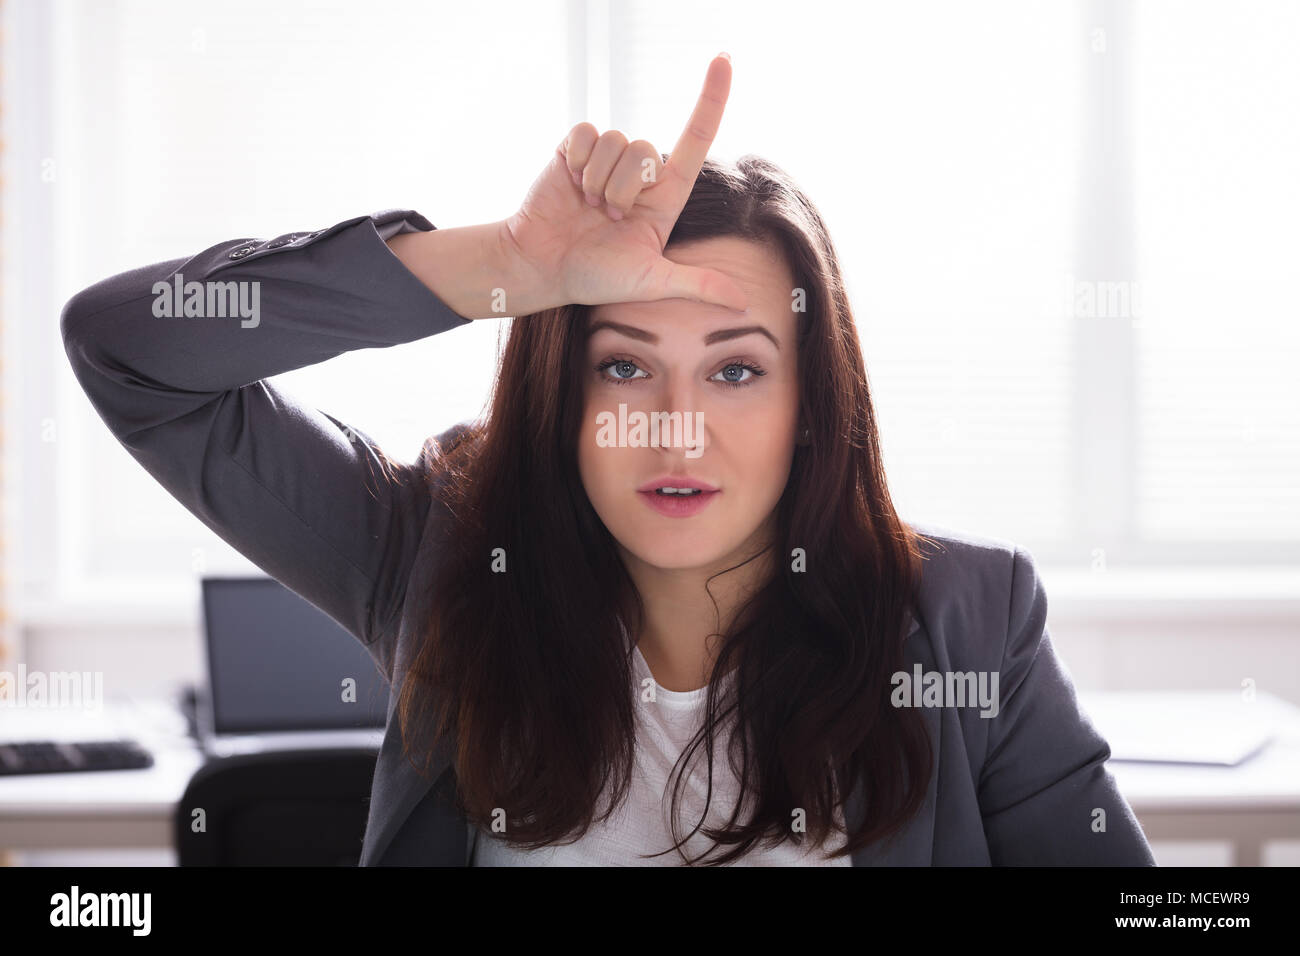 Businesswoman Showing Loser Sign With Fingers On Her Forehead - Stock Image